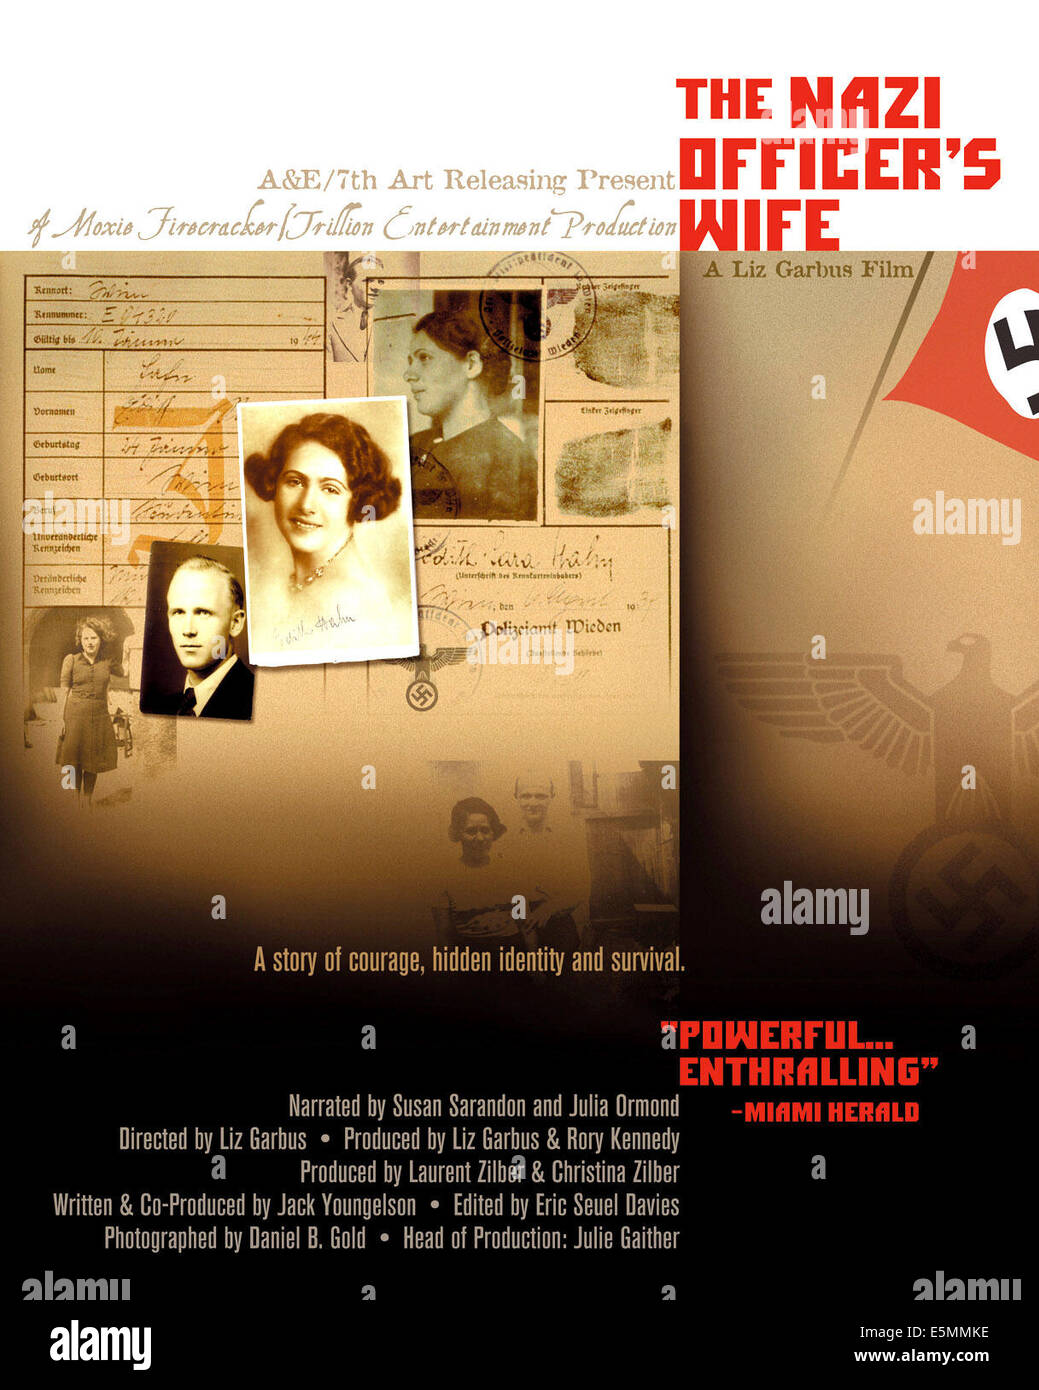 THE NAZI OFFICER'S WIFE, 2003 - Stock Image